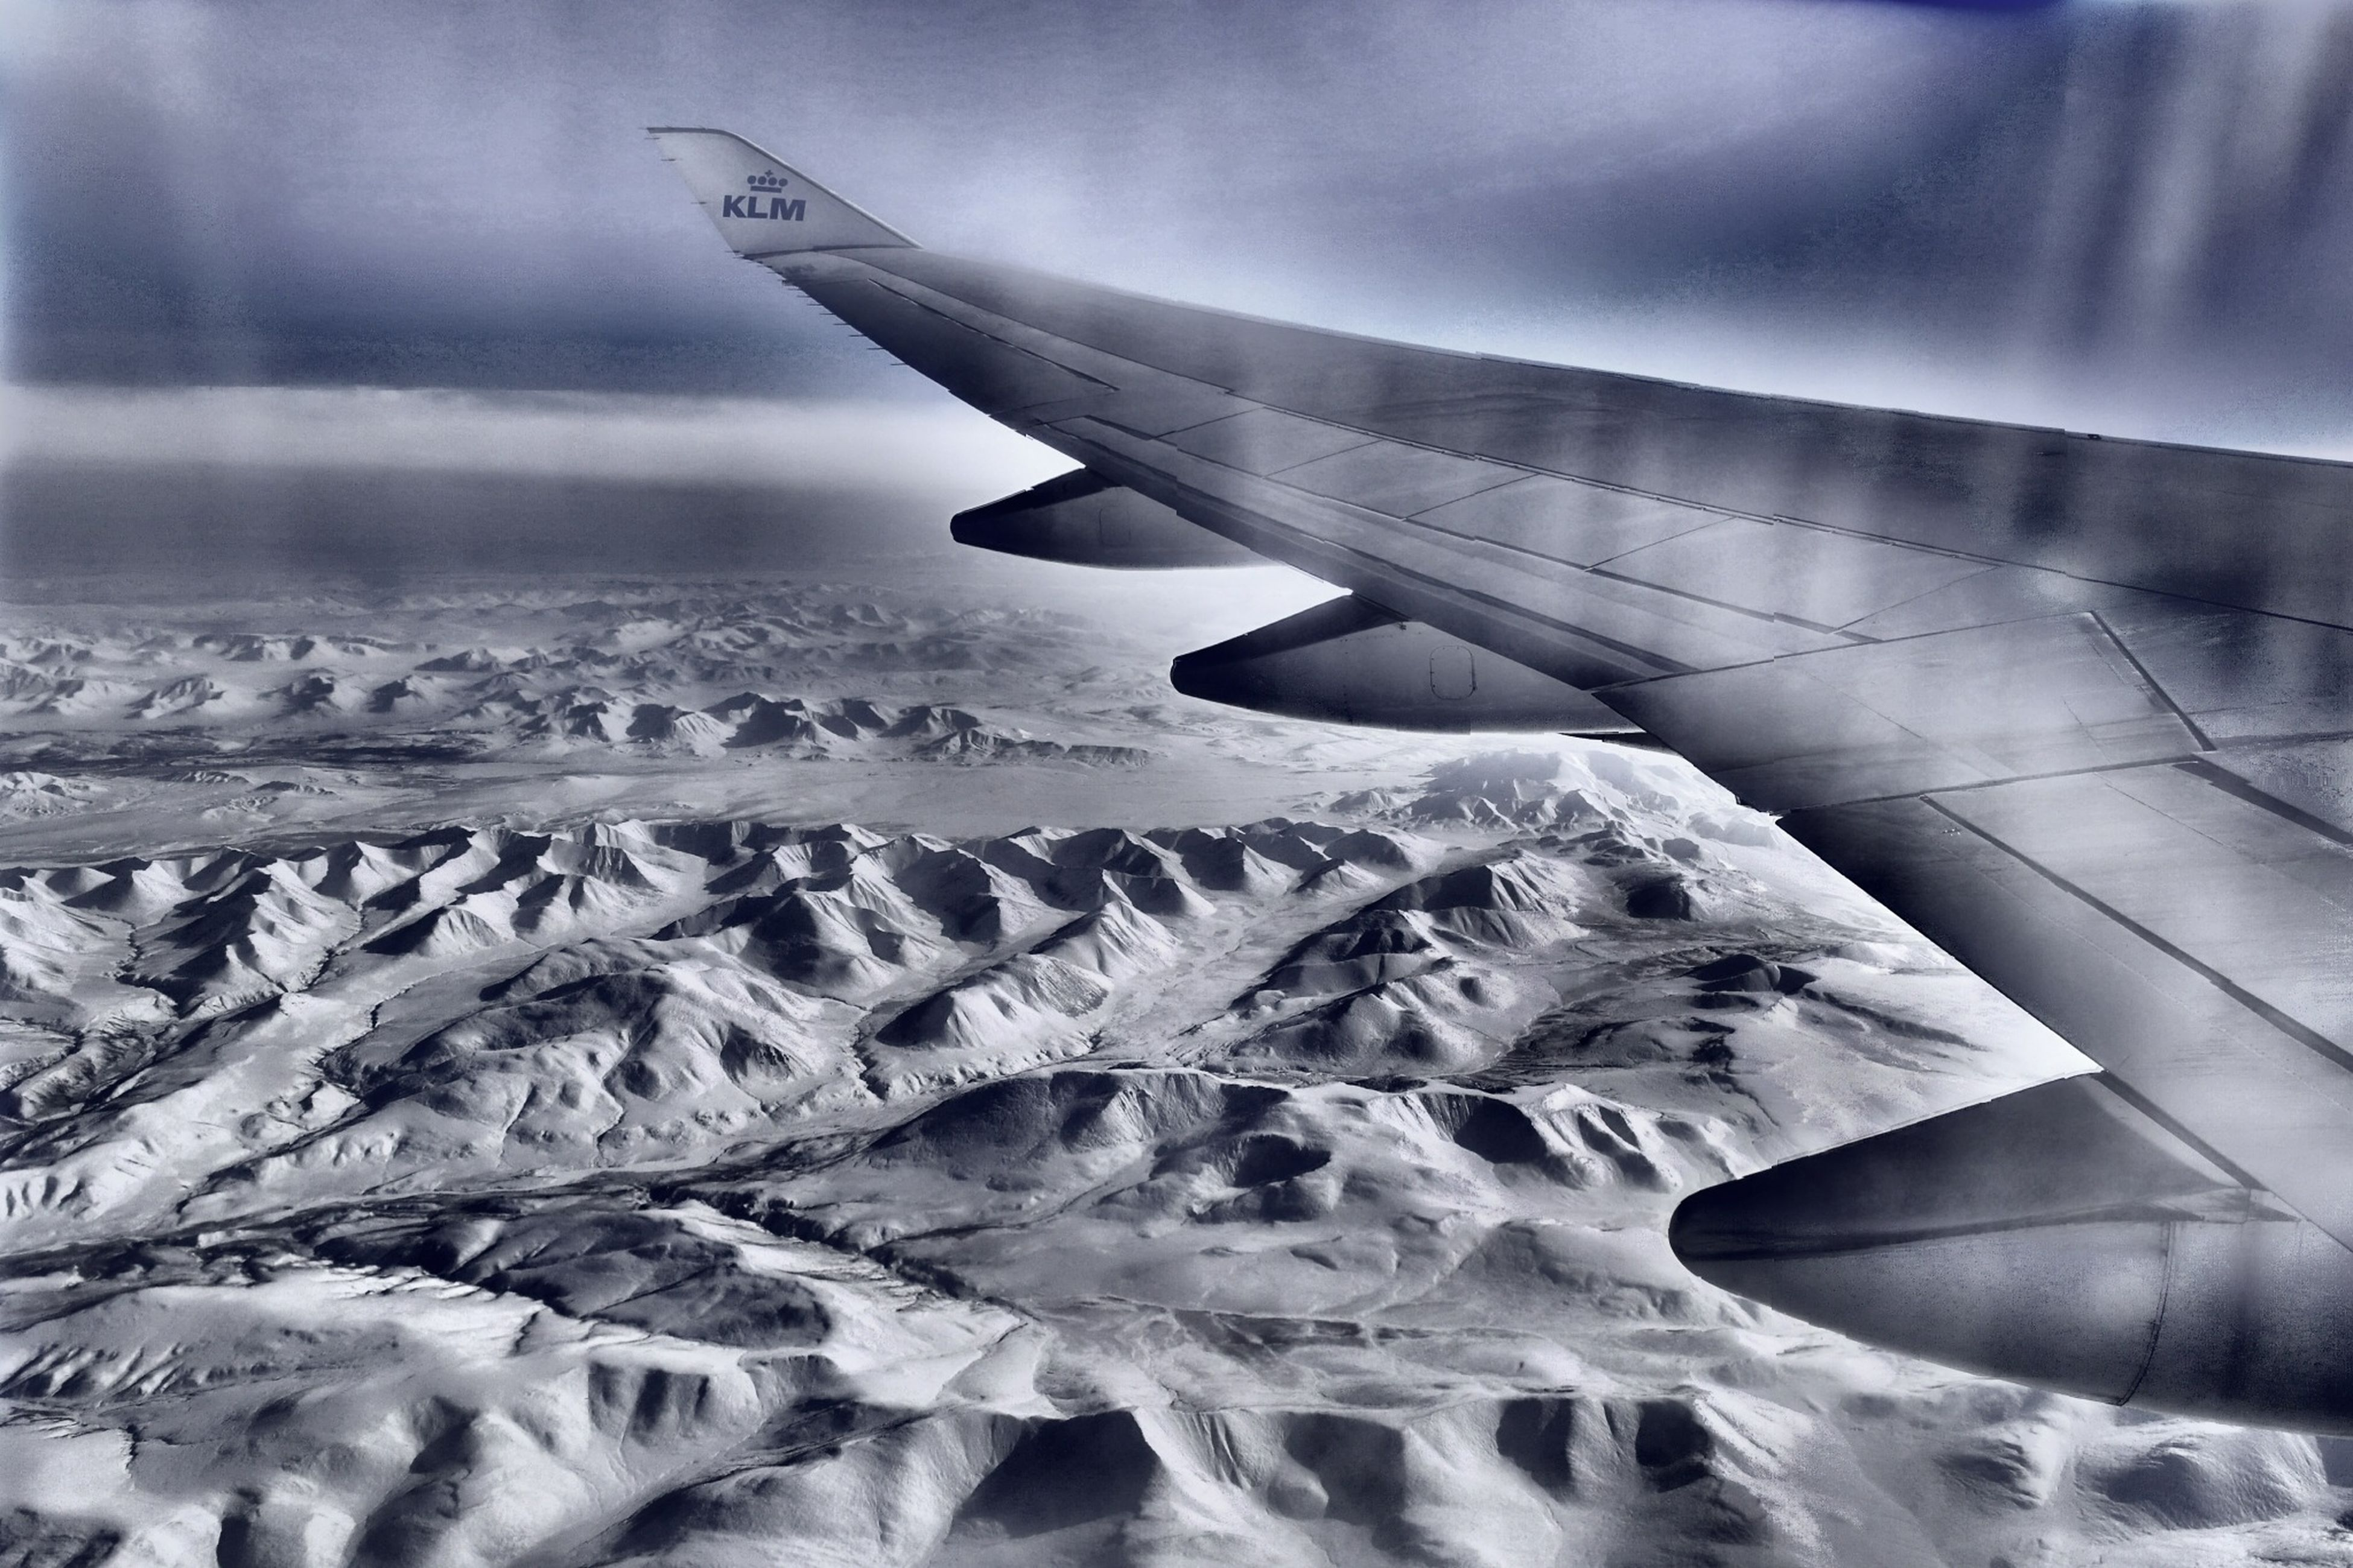 aircraft wing, airplane, flying, air vehicle, aerial view, part of, cropped, transportation, mode of transport, snow, winter, sky, landscape, travel, cold temperature, nature, scenics, mid-air, journey, beauty in nature